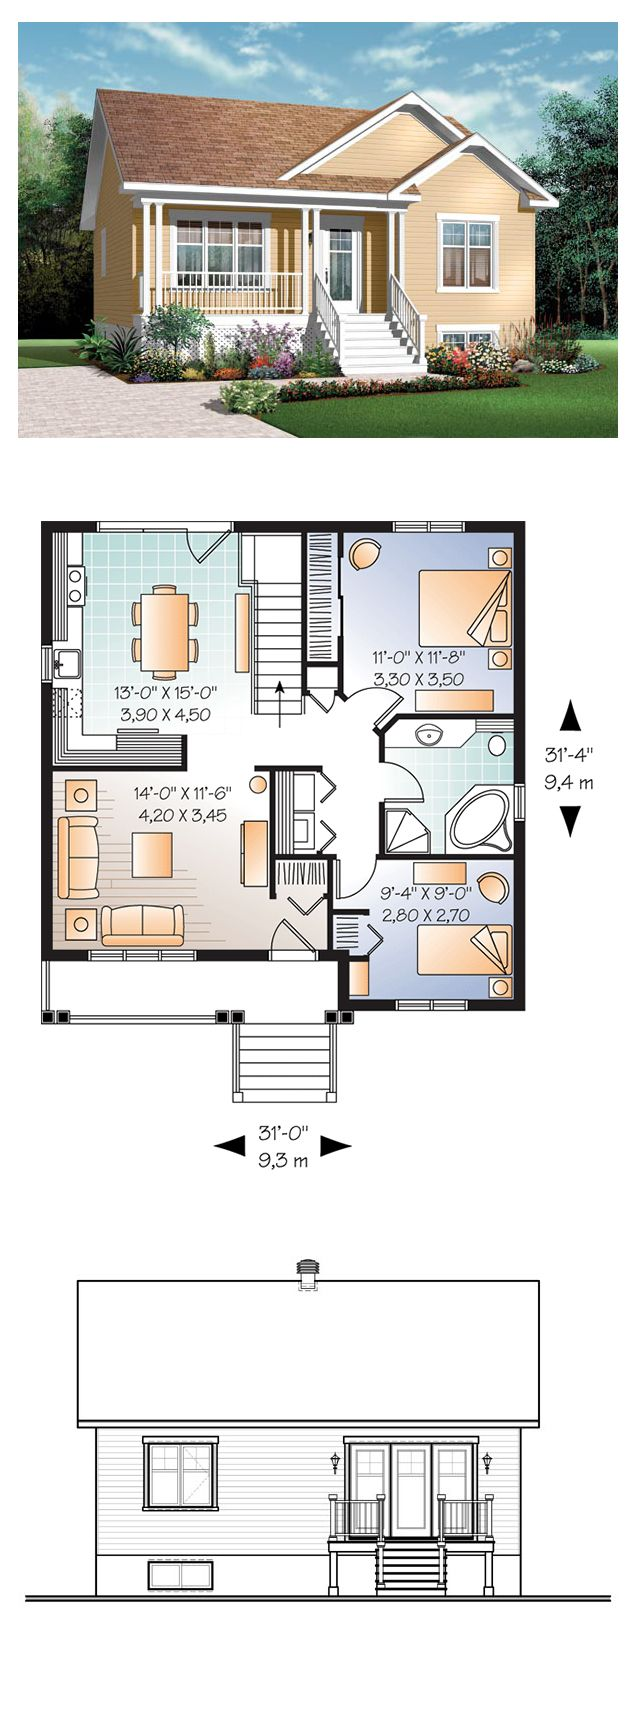 best 25 2 bedroom floor plans ideas on pinterest small house bungalow country traditional house plan 76183